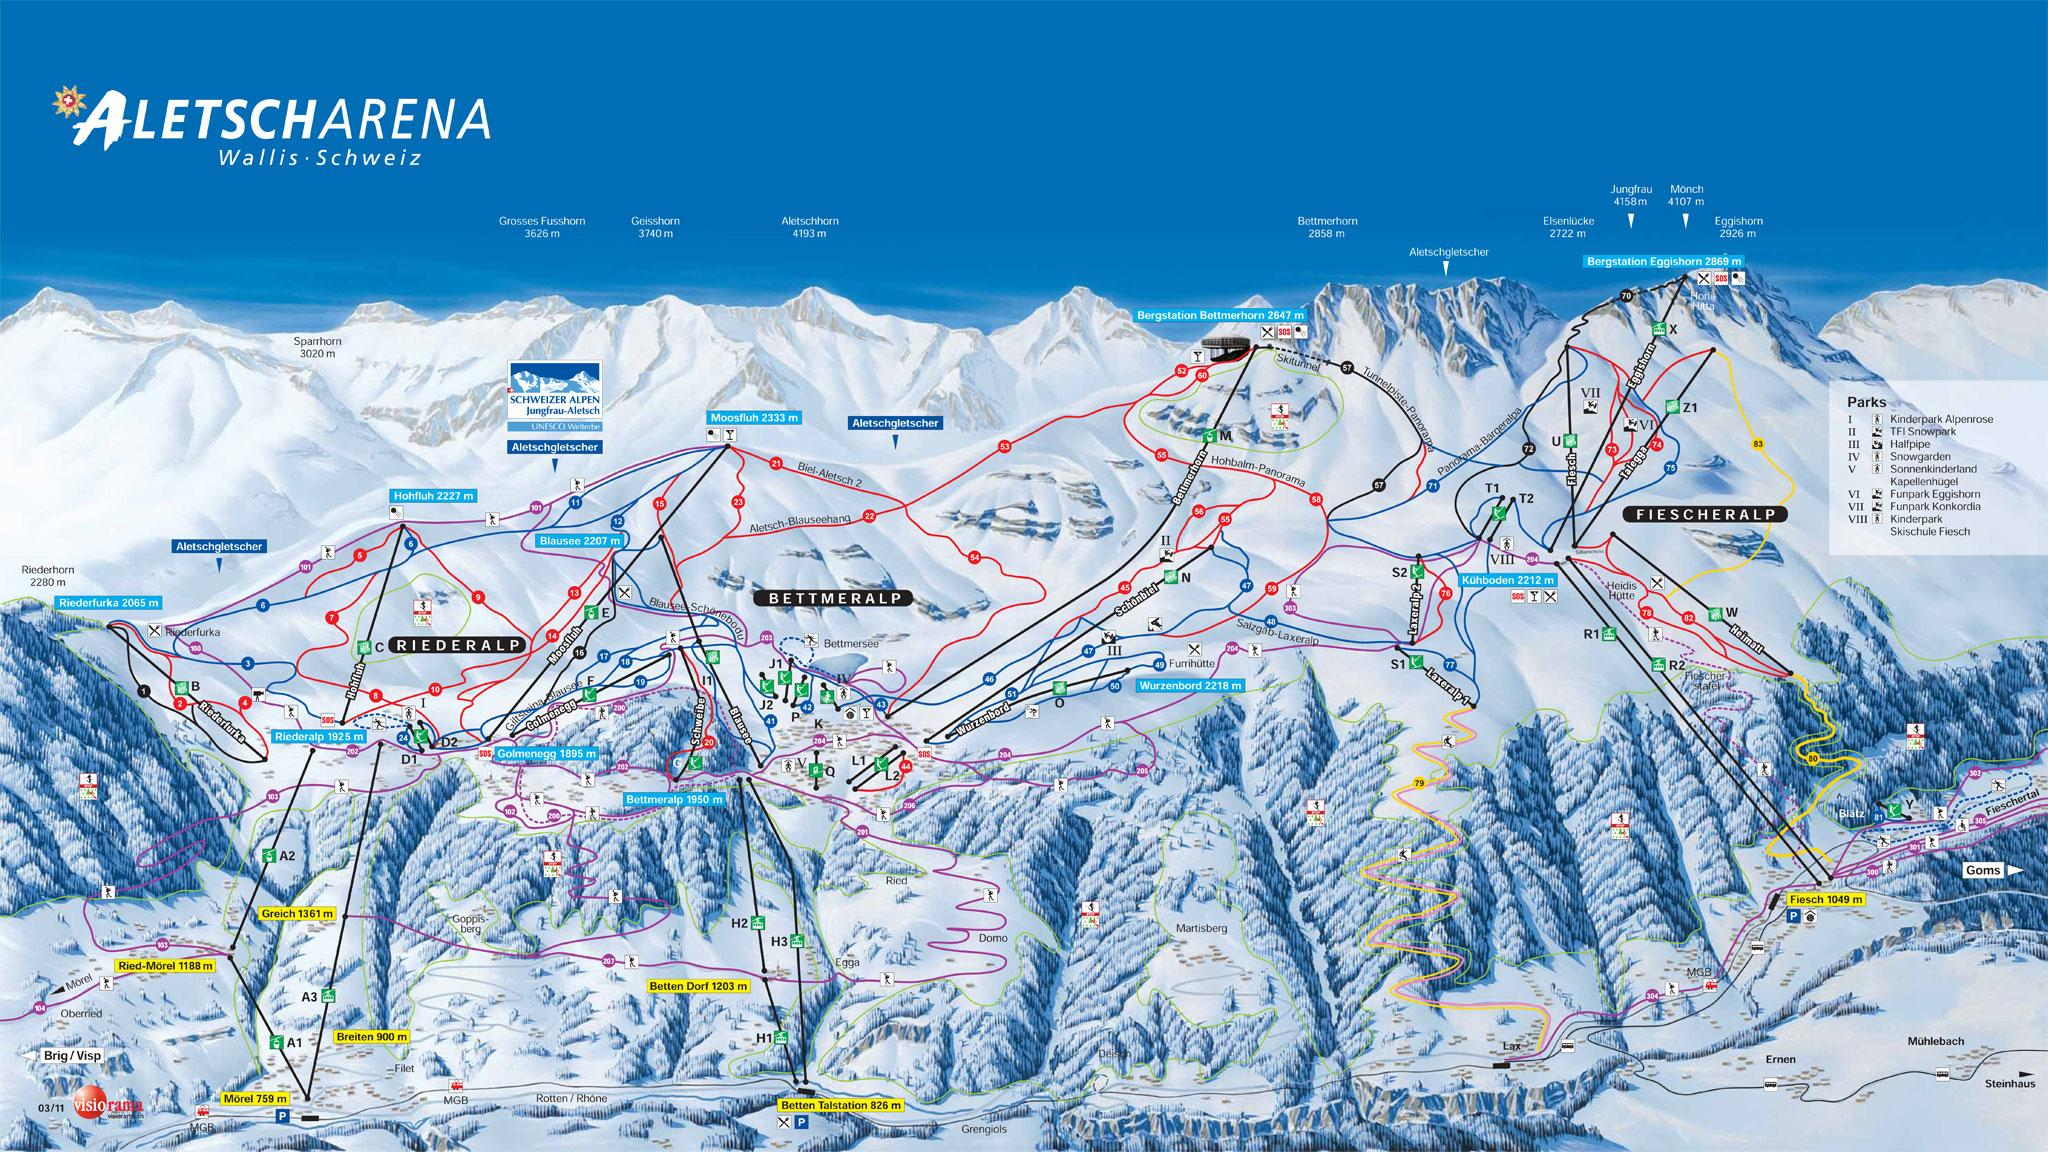 Bettmeralp Piste Map J2Ski